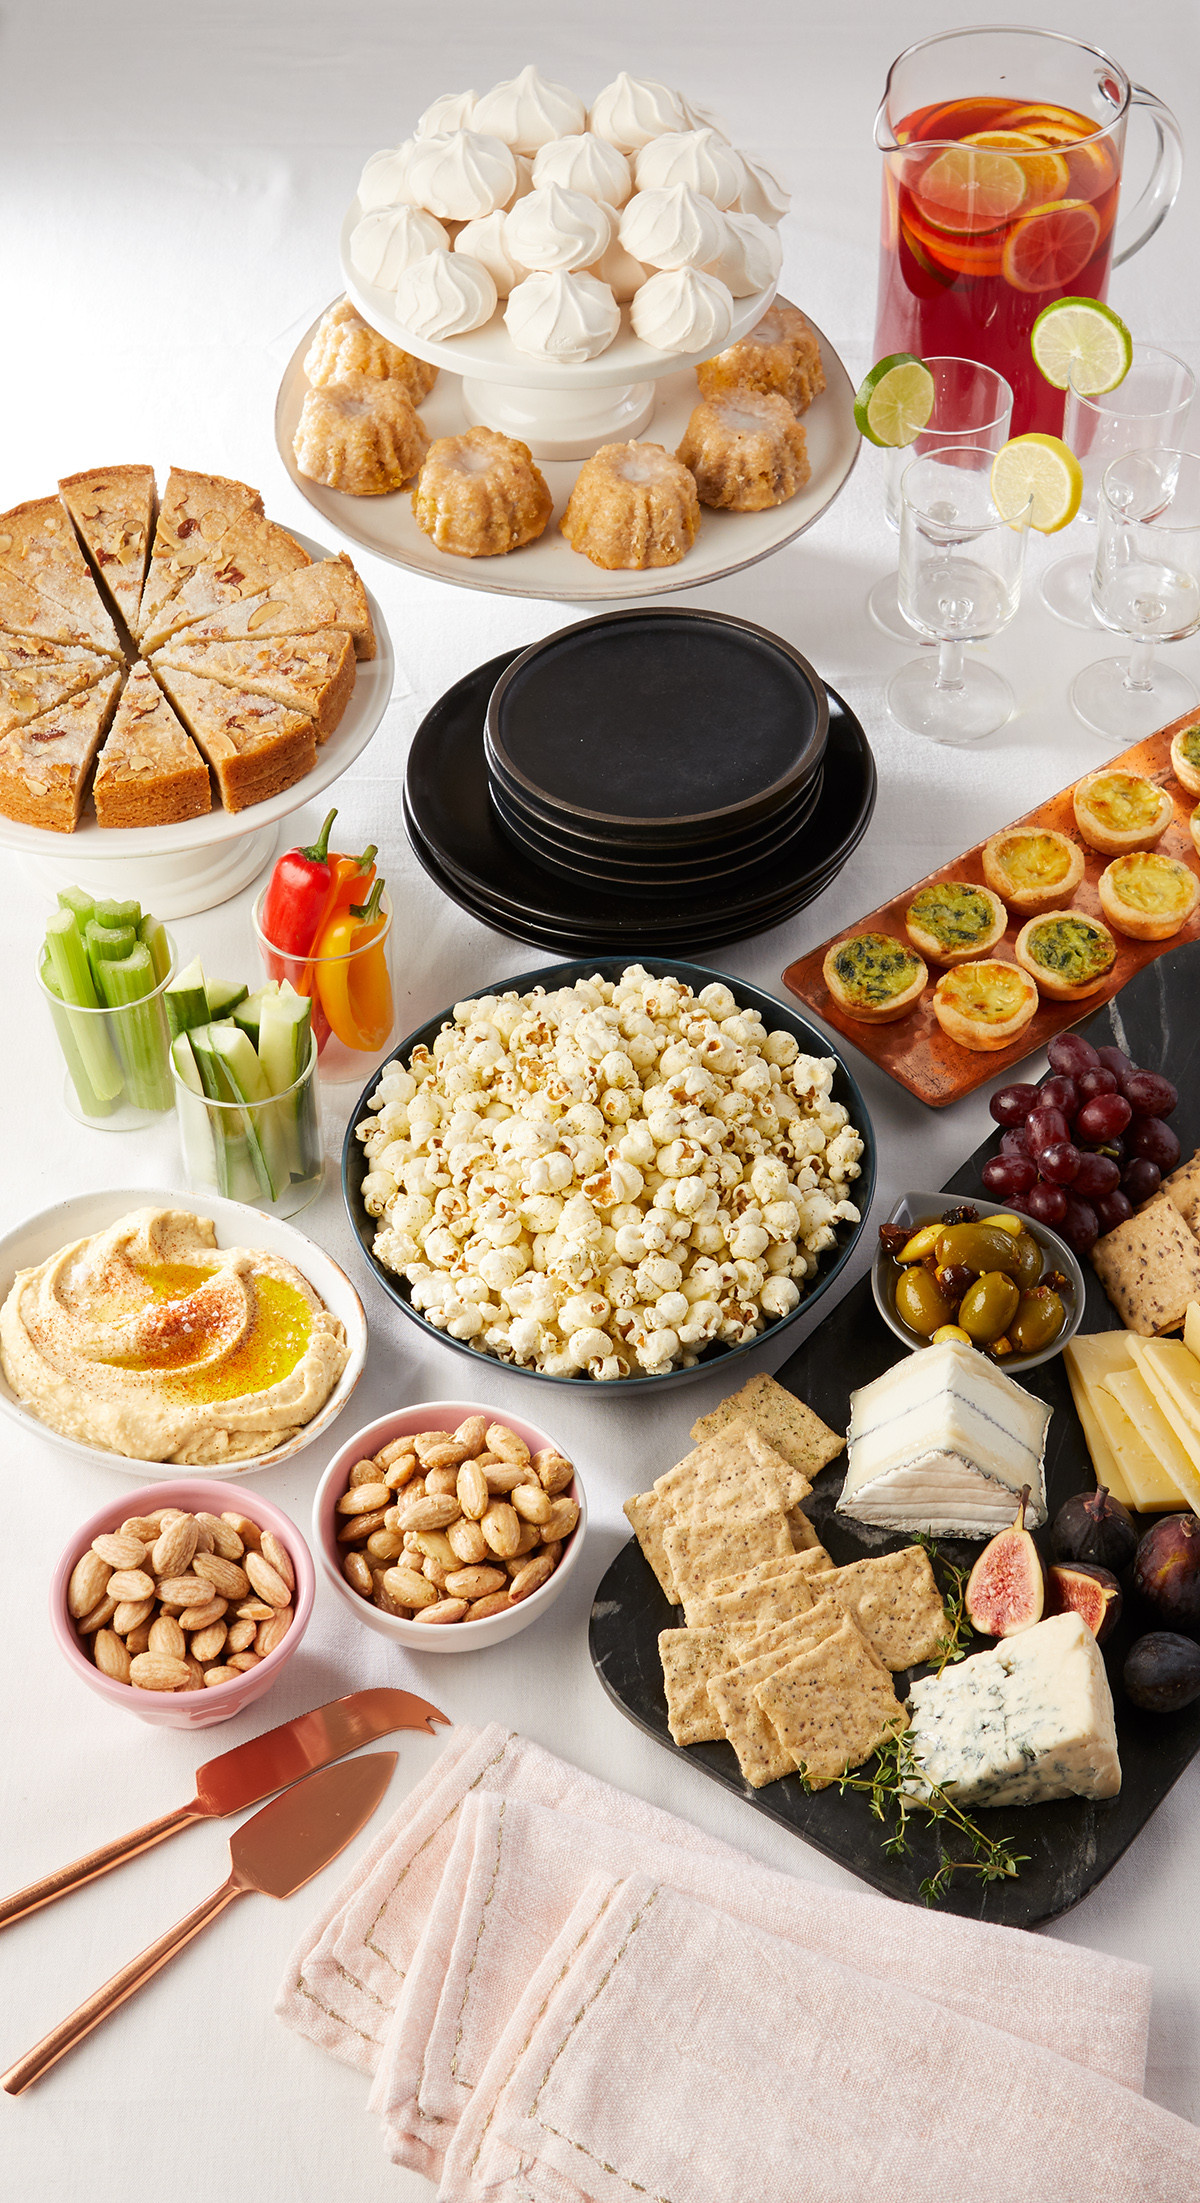 Food Ideas For Dinner Party  Host an Appetizers ly Dinner Party Finger Food Ideas